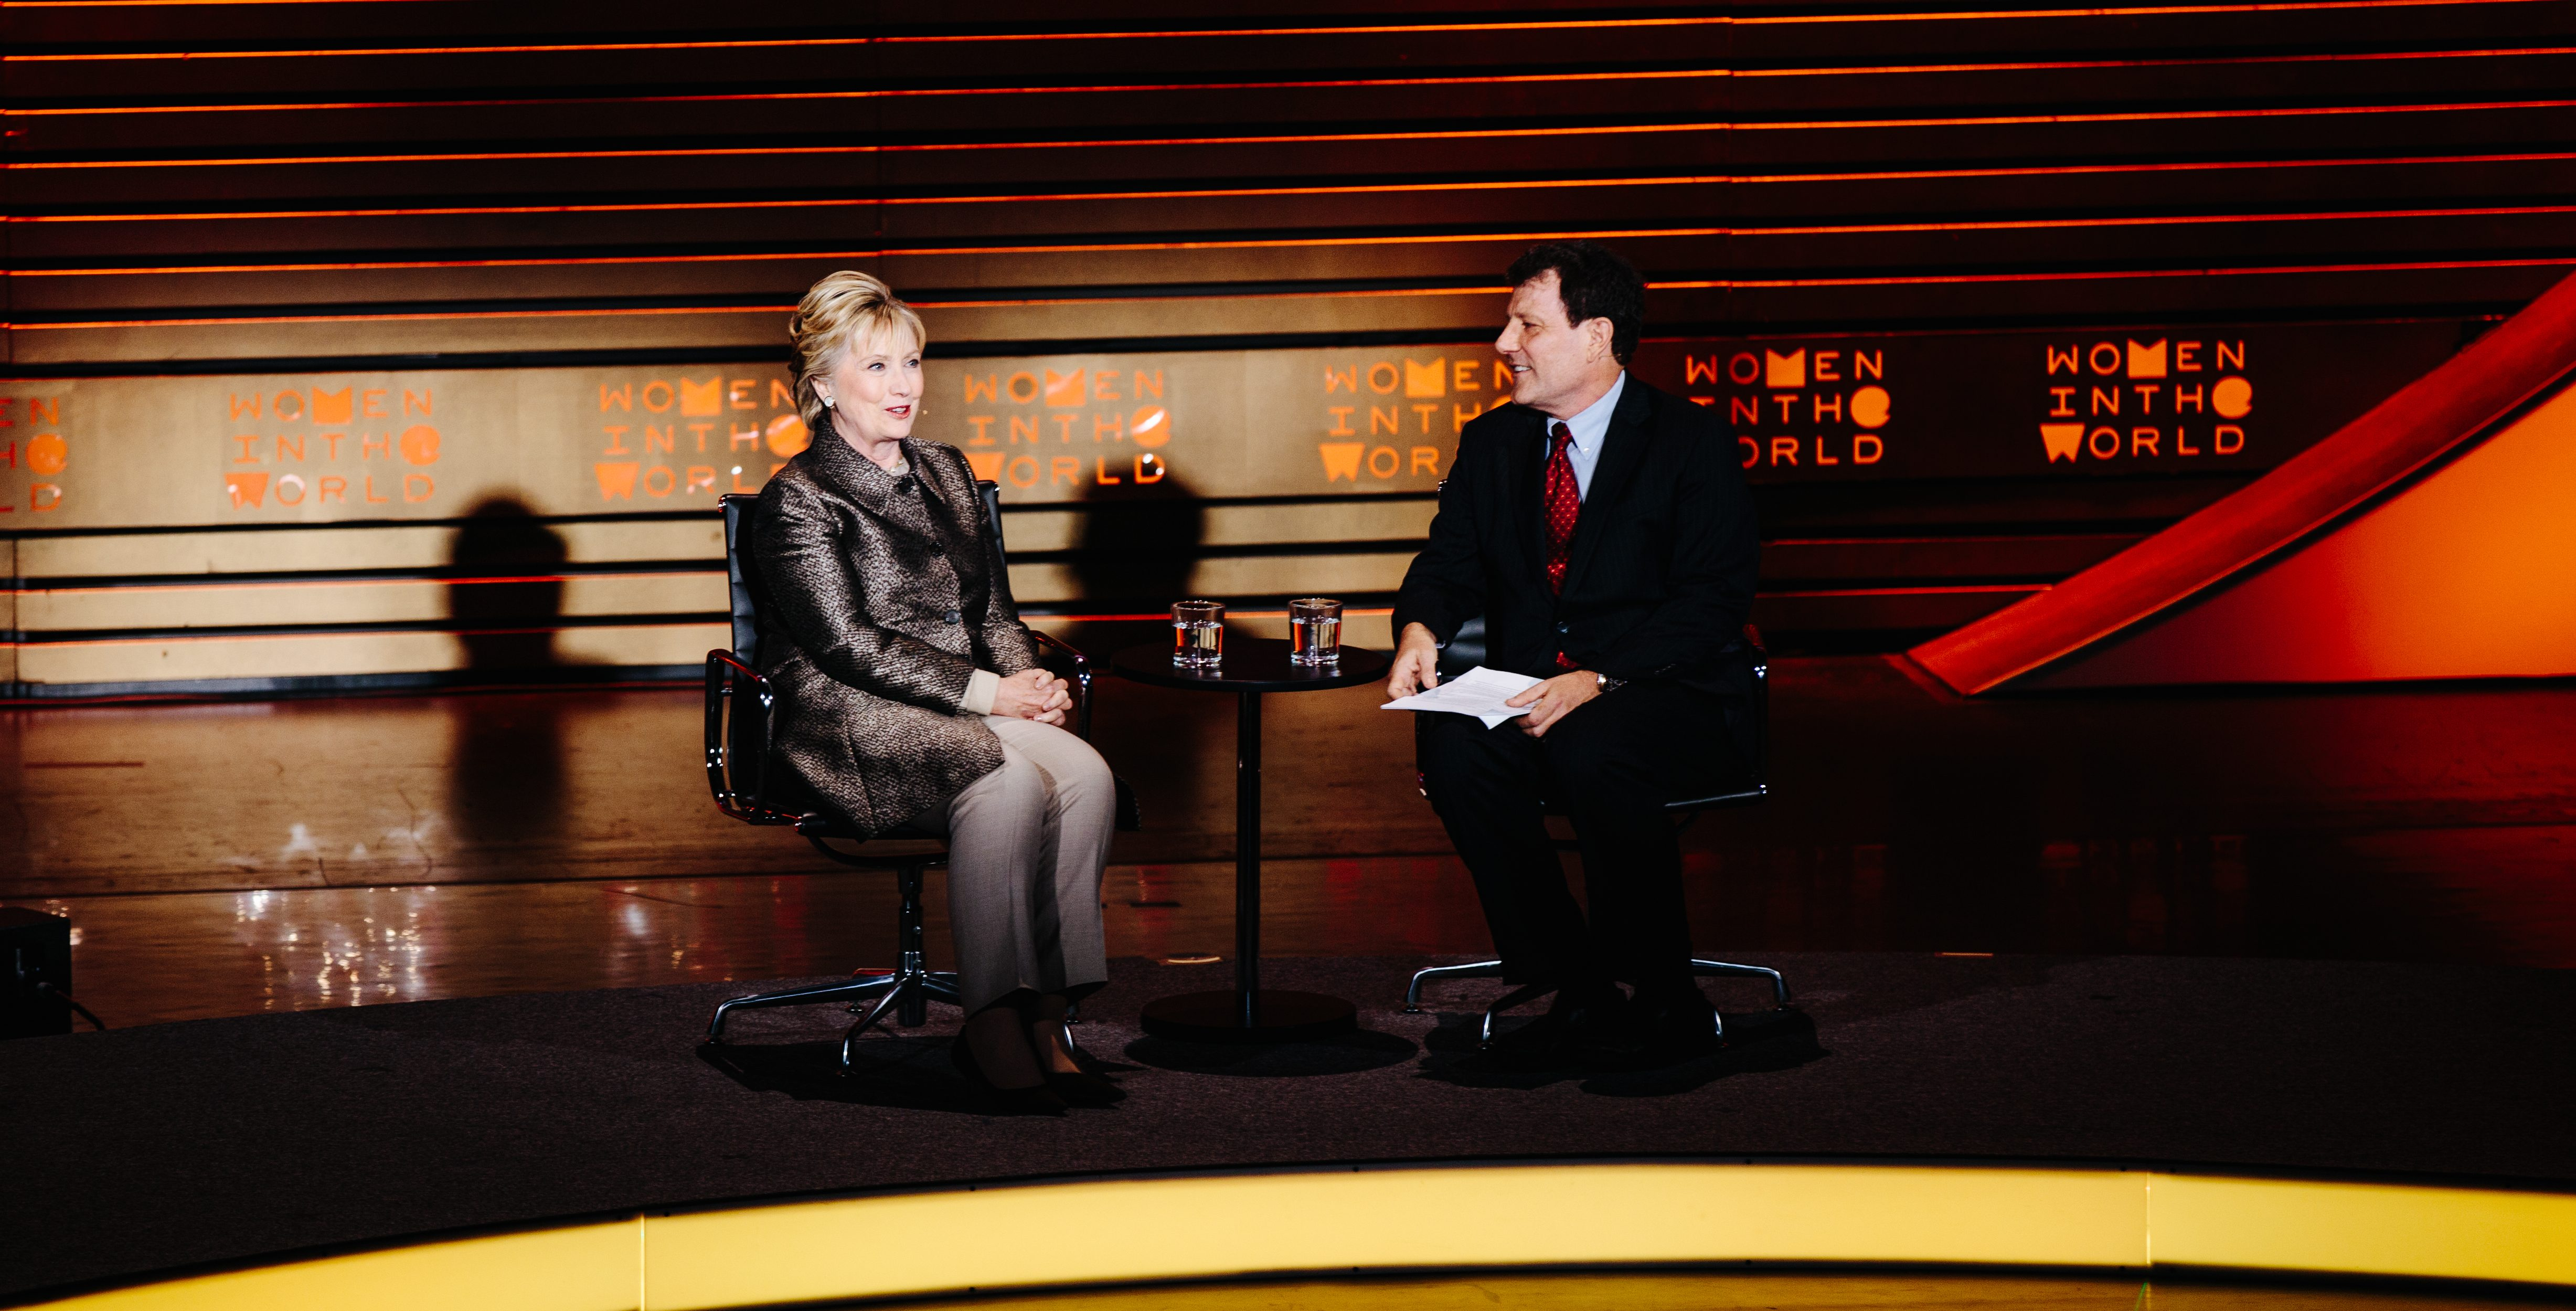 Hillary Clinton participates in a conversation with journalist Nicholas Kristof during a session of the Women in the World Summit in New York, USA, 6 April 2017.